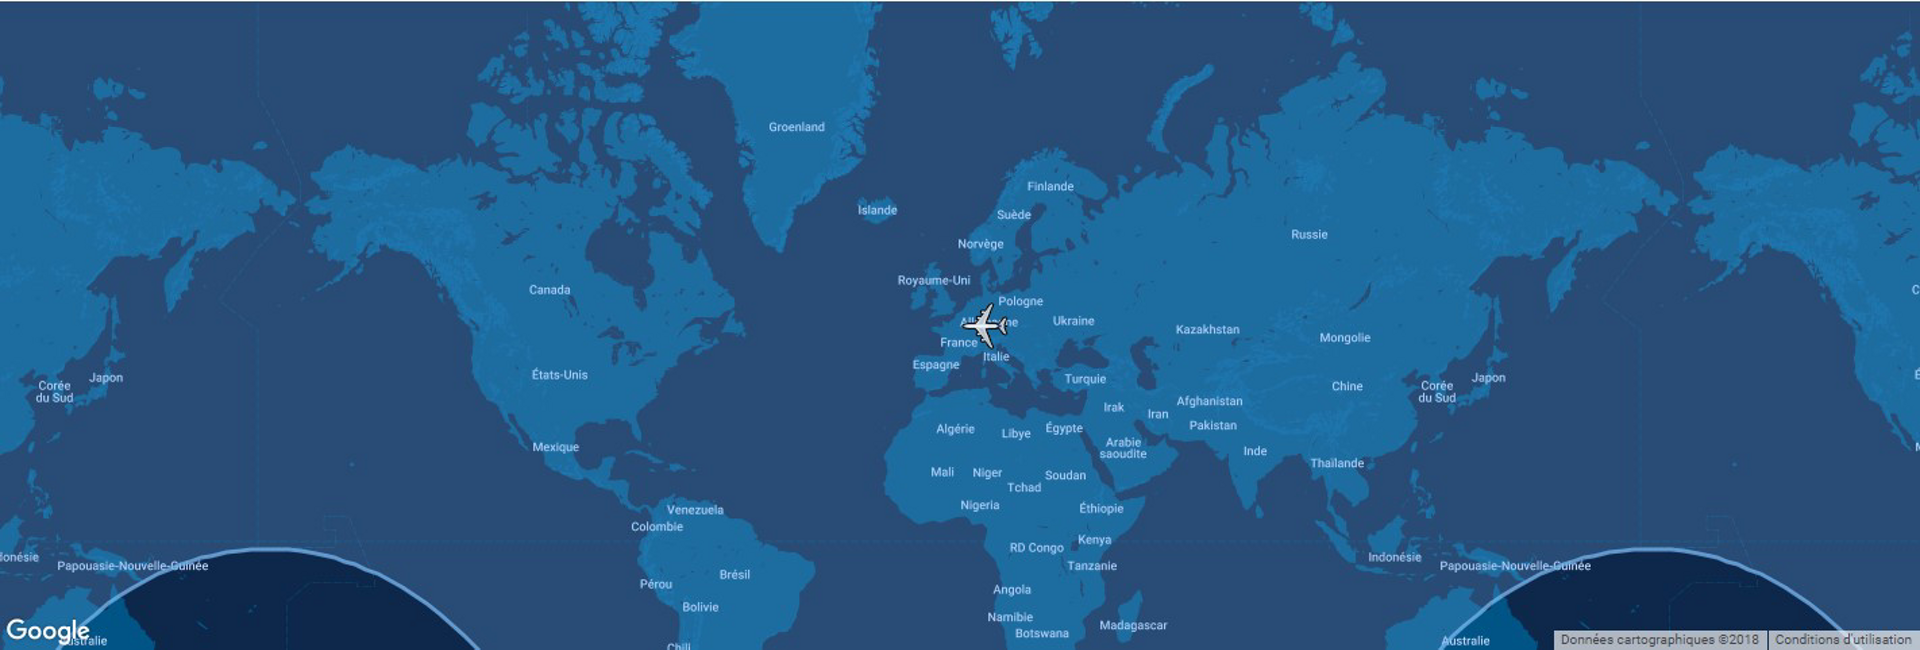 The typical range for Airbus' A380 commercial aircraft is shown in this diagram, which includes a global map.